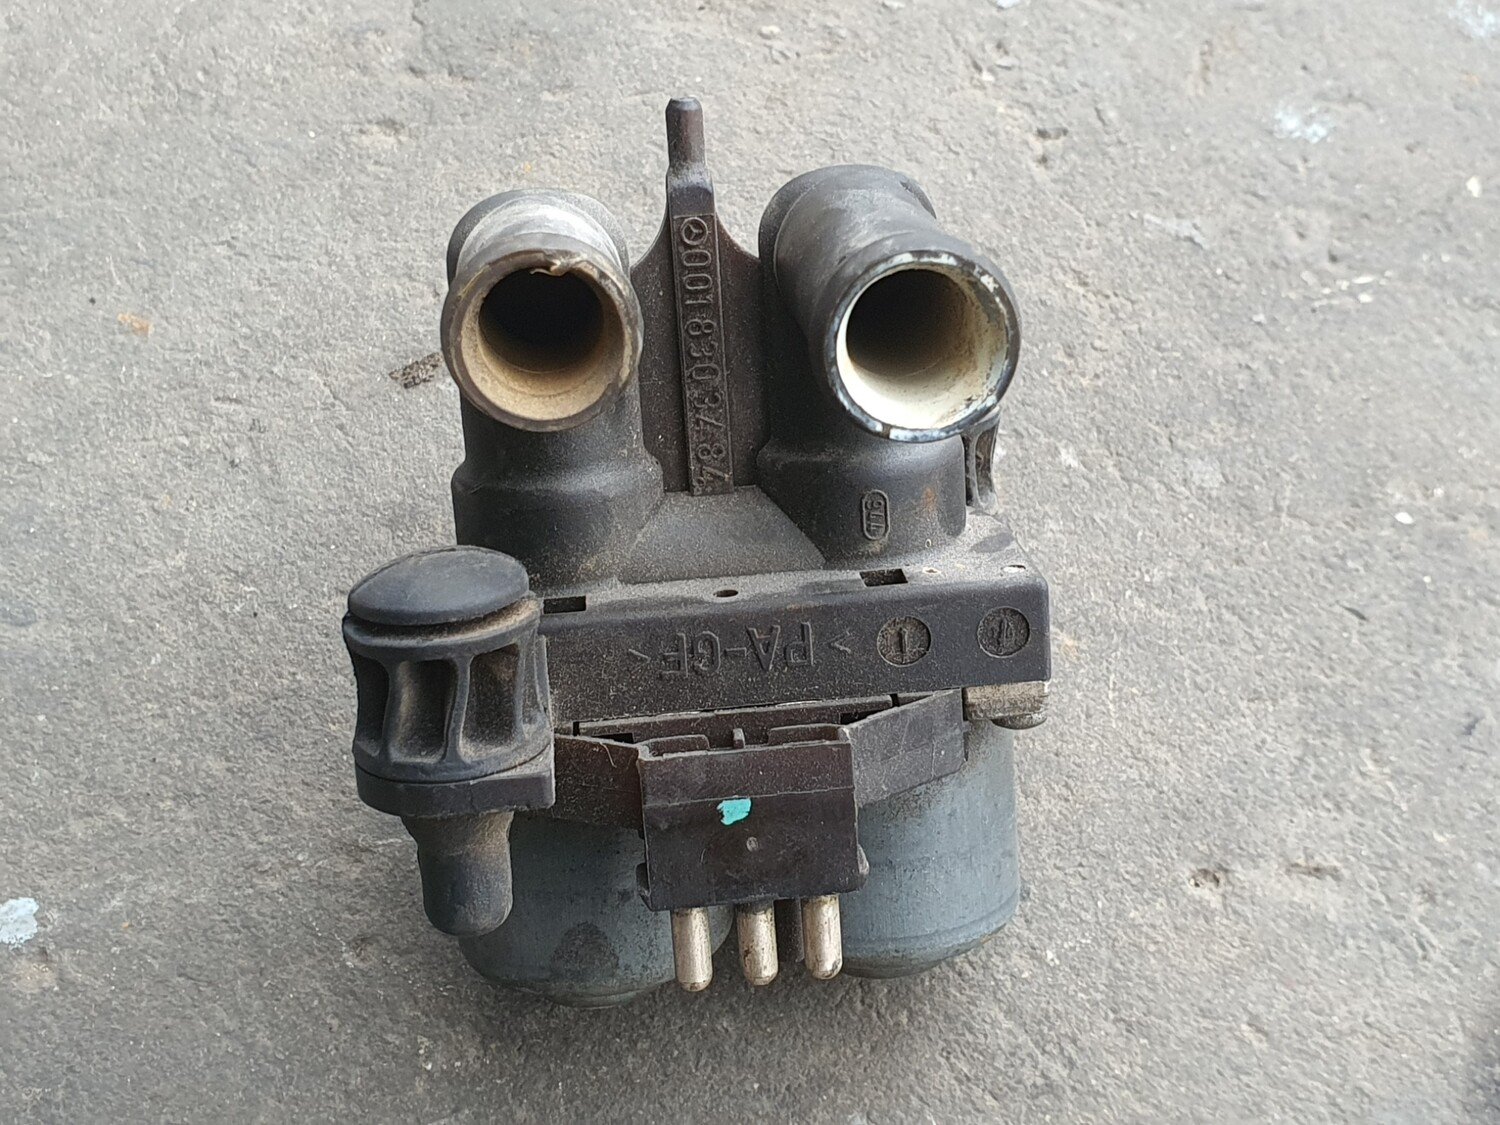 Mercedes-Benz Duo Valve (W202 1994 to 1997)